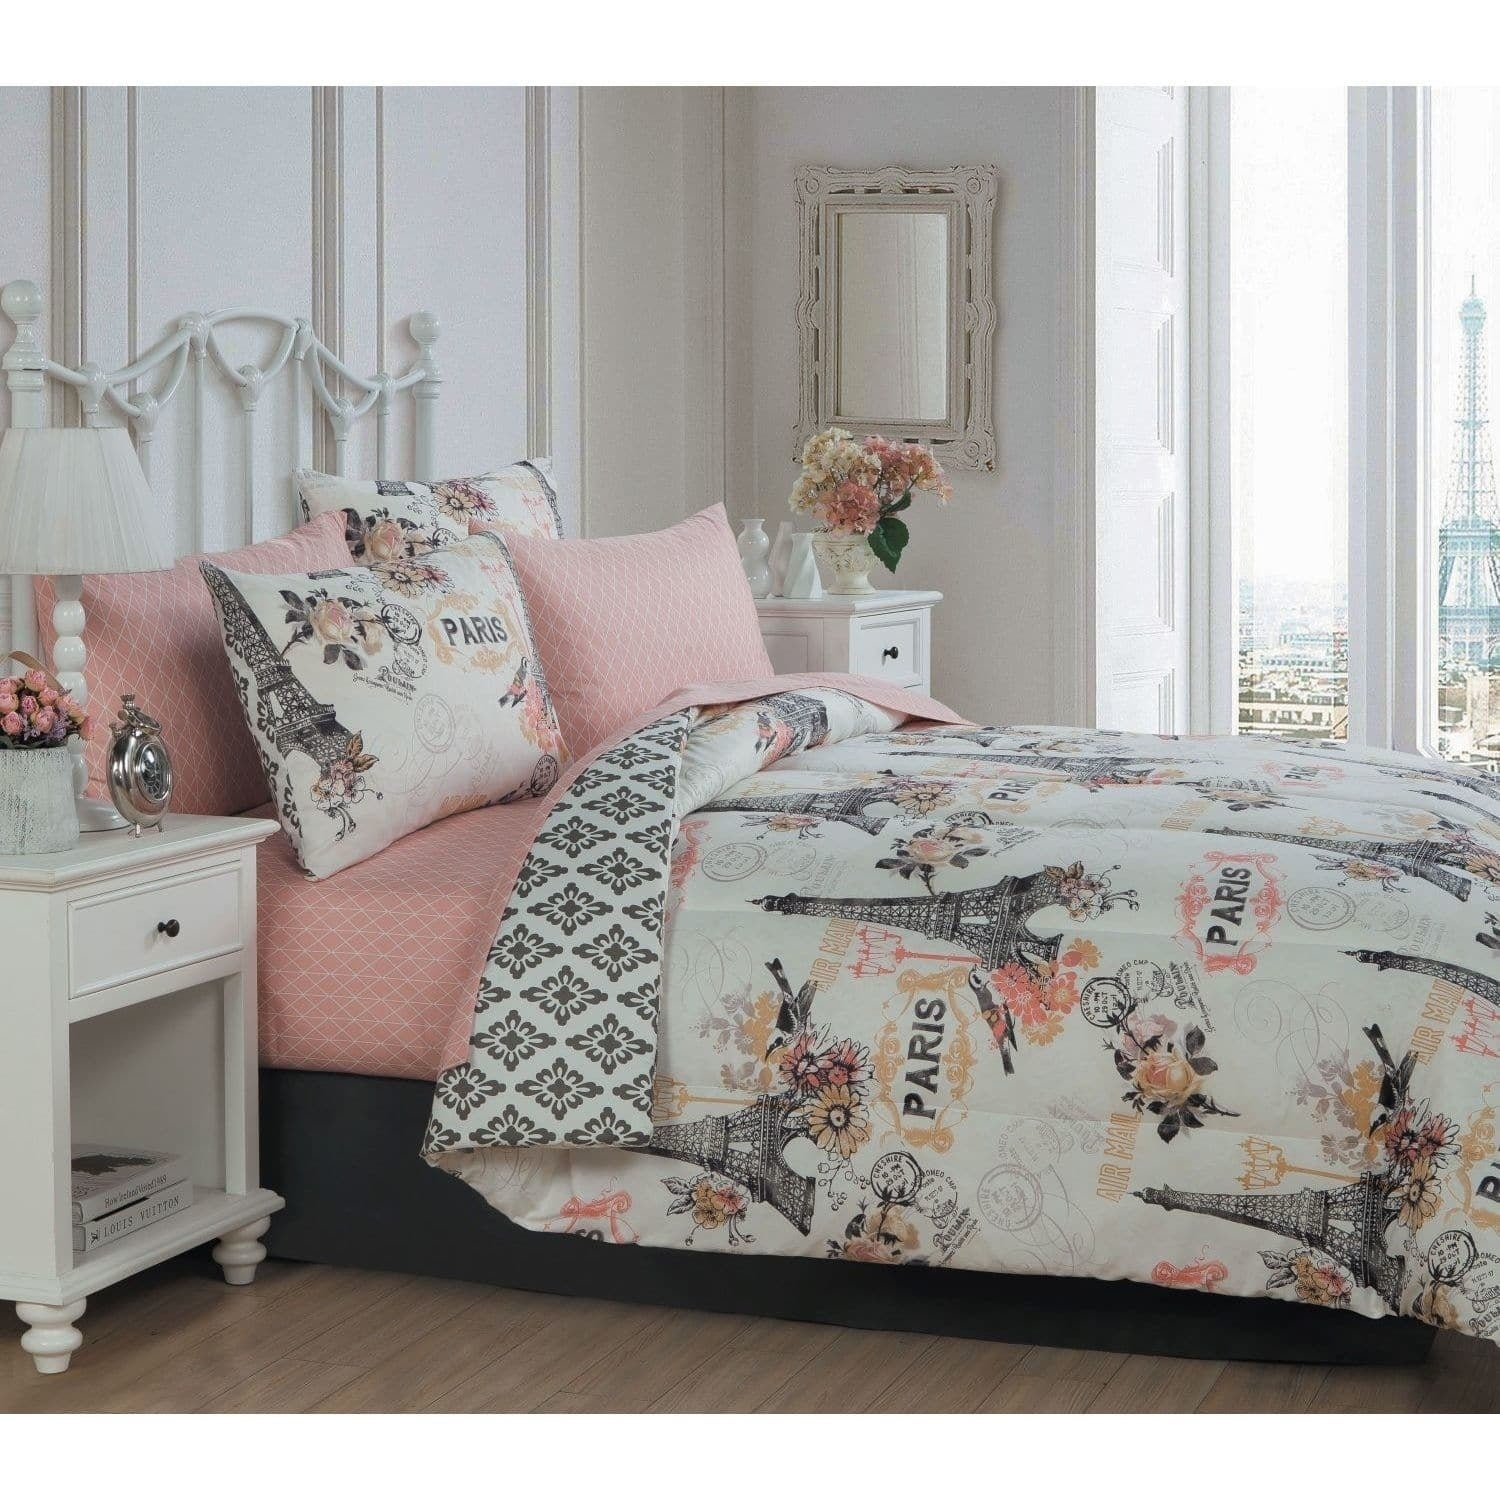 Ze Pink Bedroom Decorating Ideas Html on